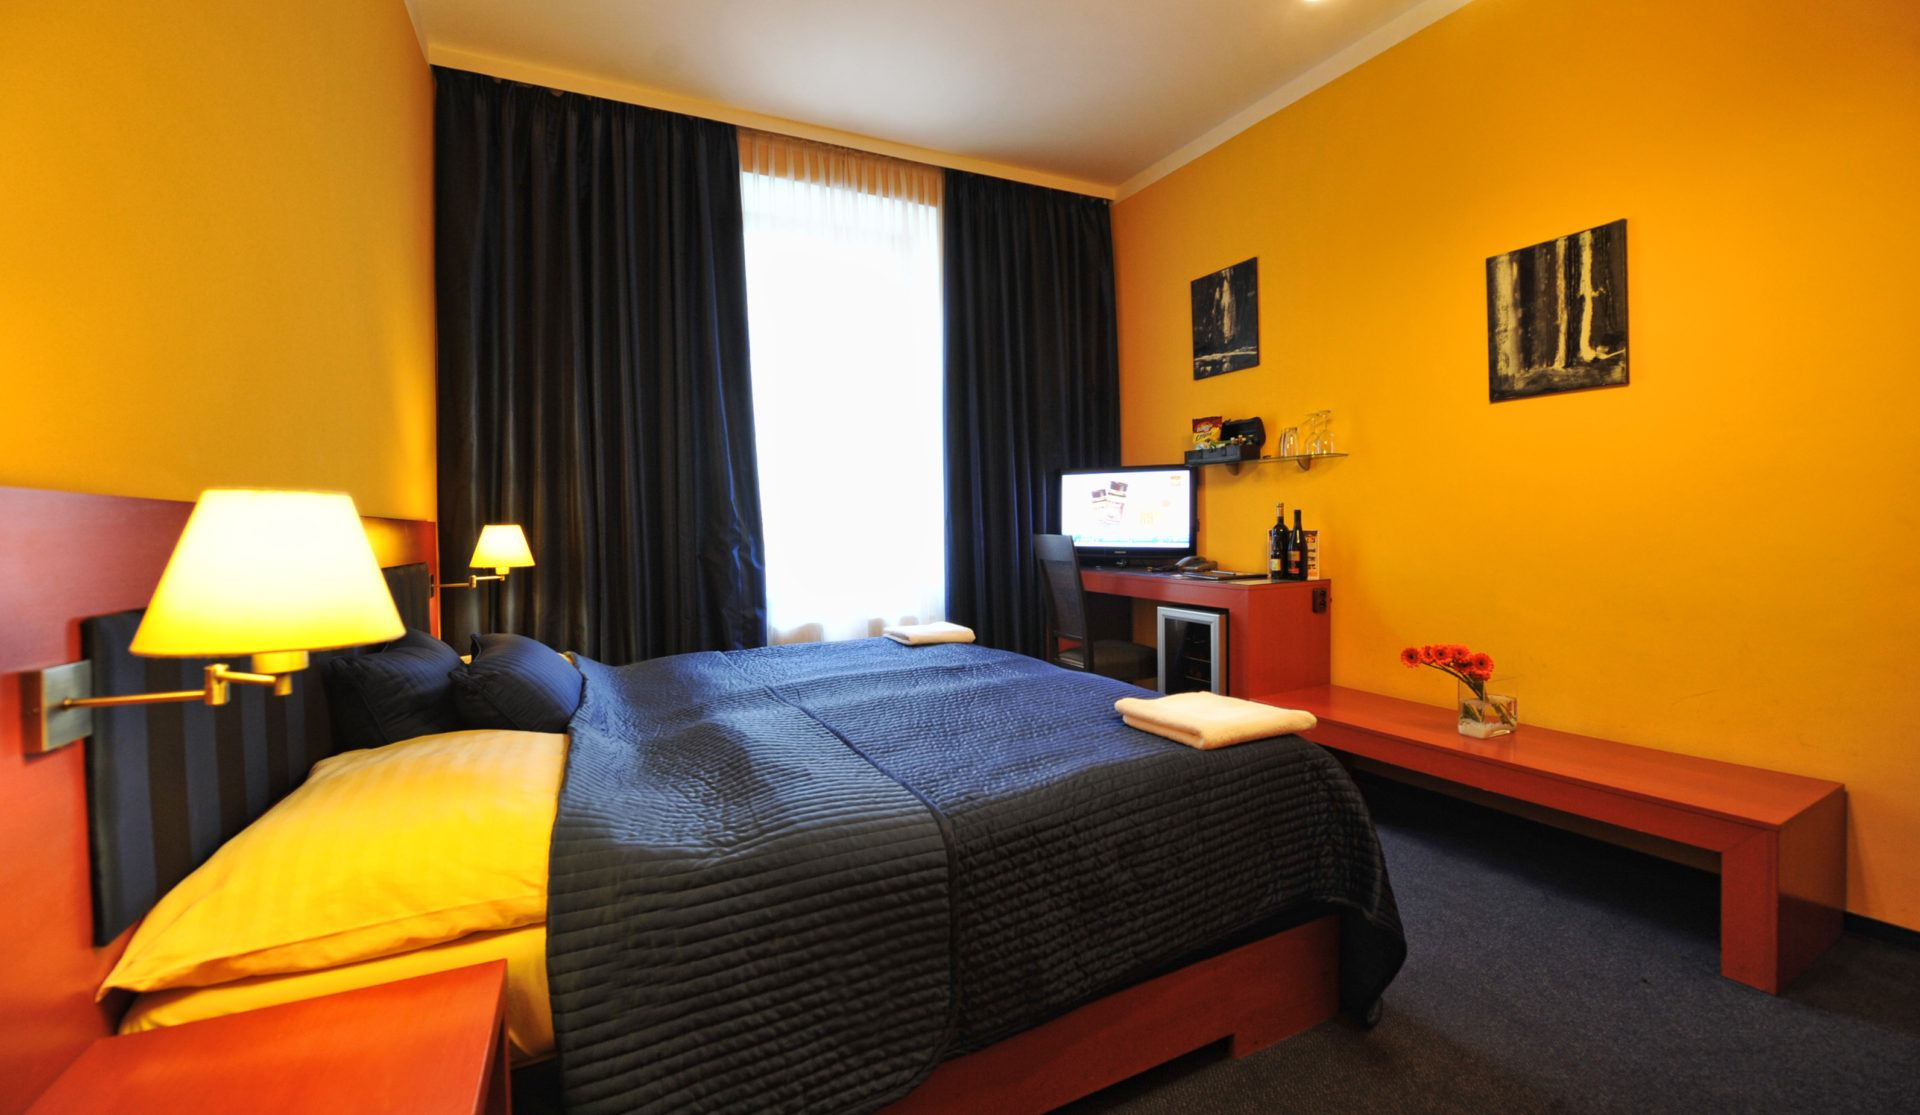 Standard room **** Double Brno